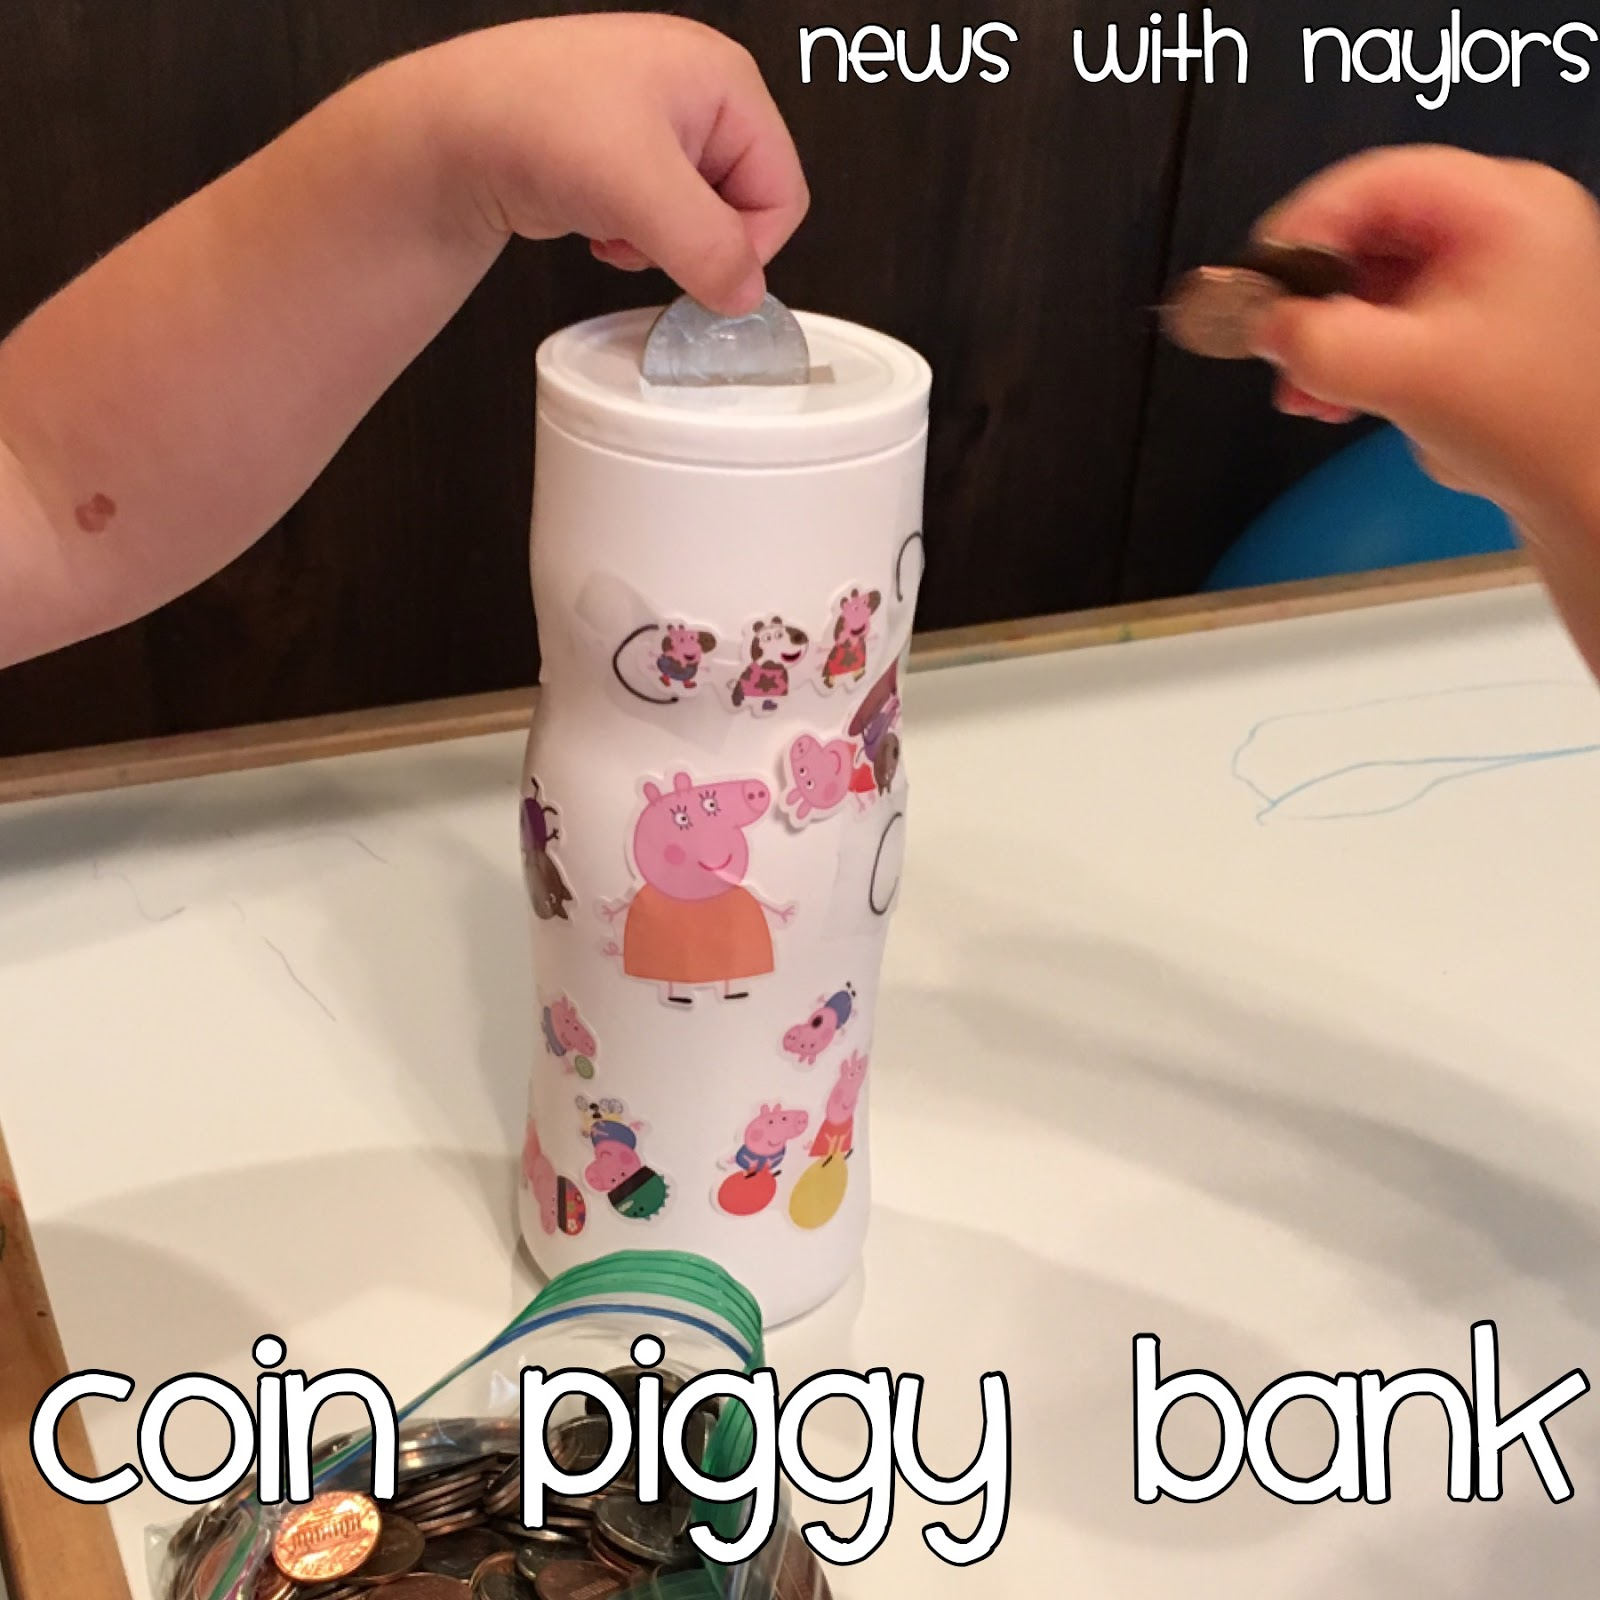 News With Naylors Letter C Coin Piggy Bank Coin